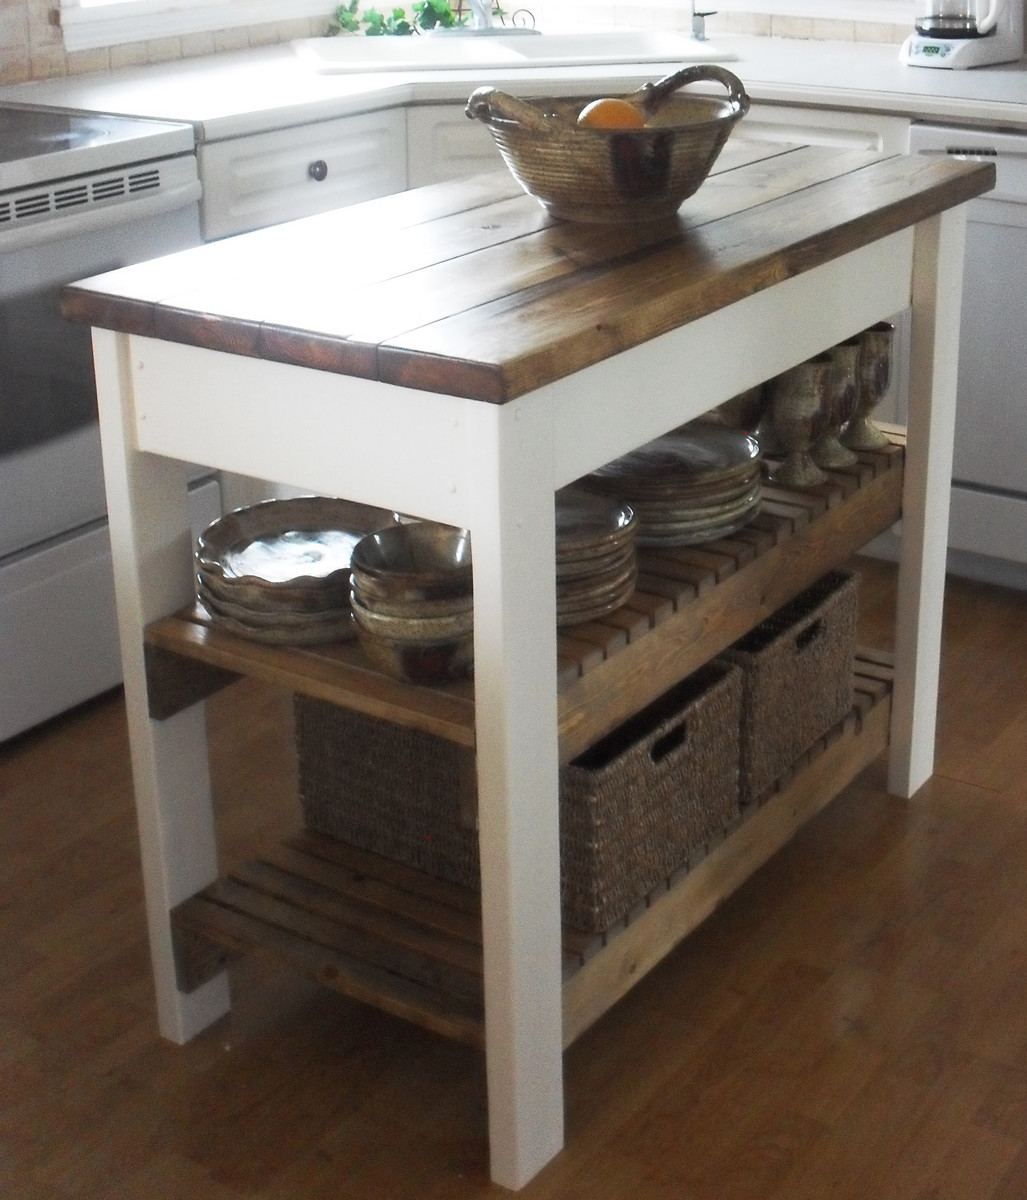 Ana white kitchen island diy projects for Kitchen design diy